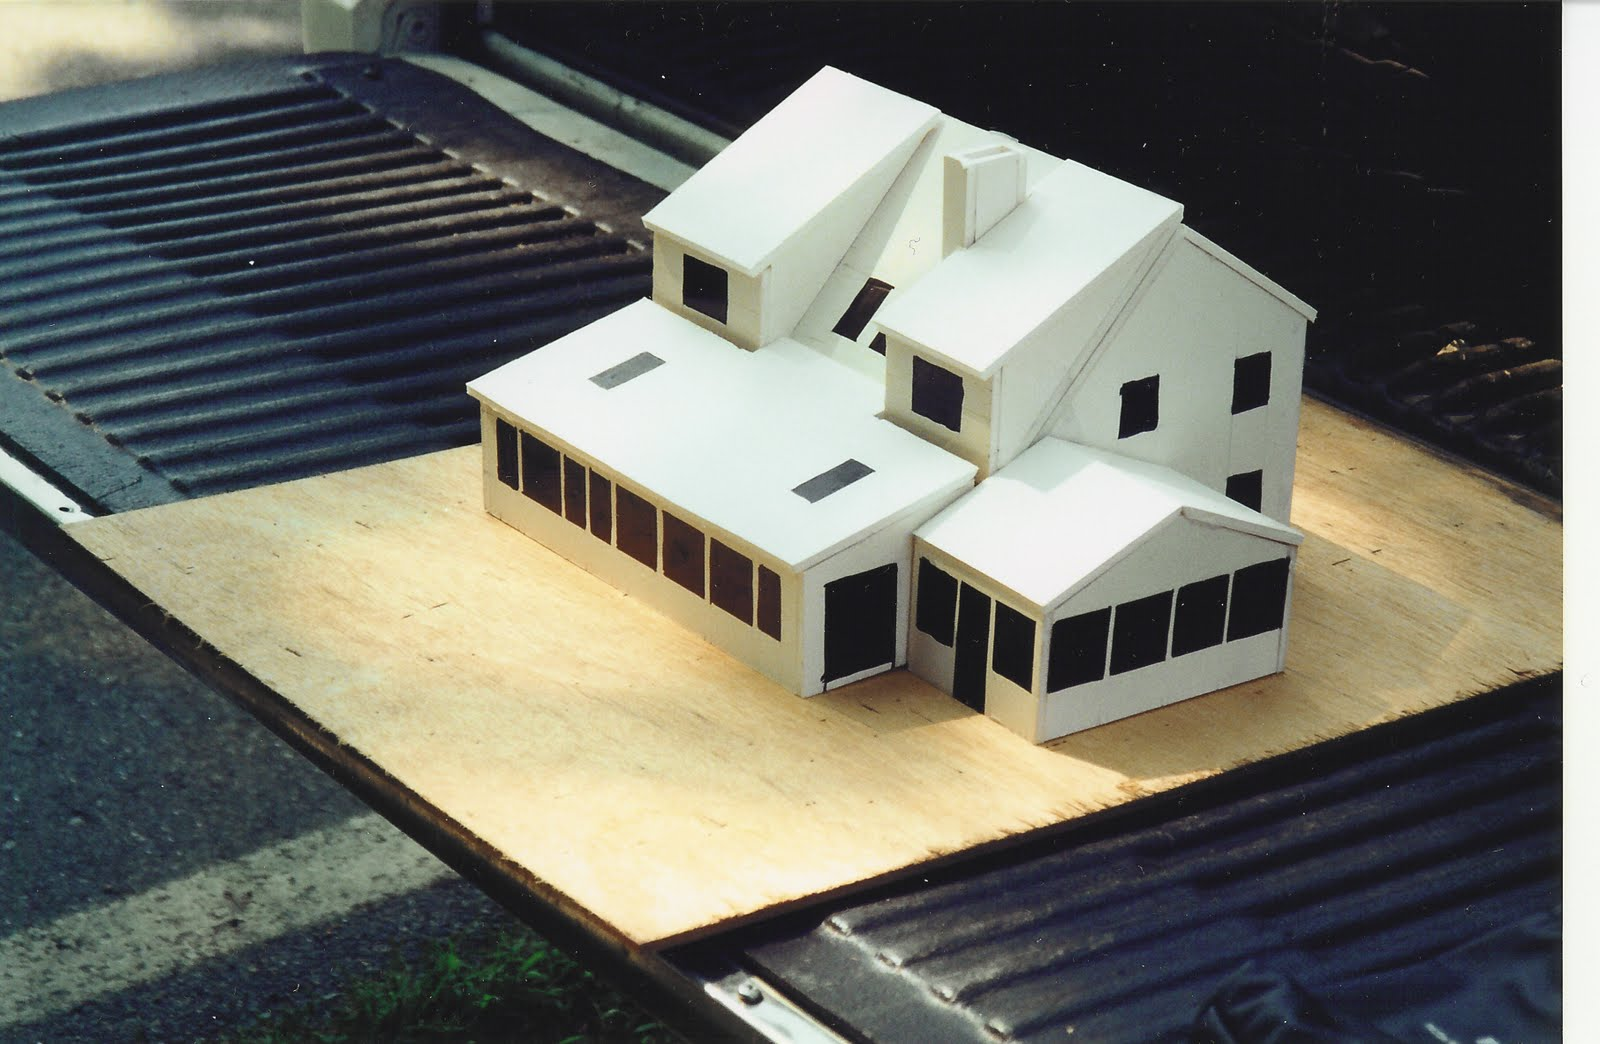 Home remodeling blog build a foam core model before Building model homes